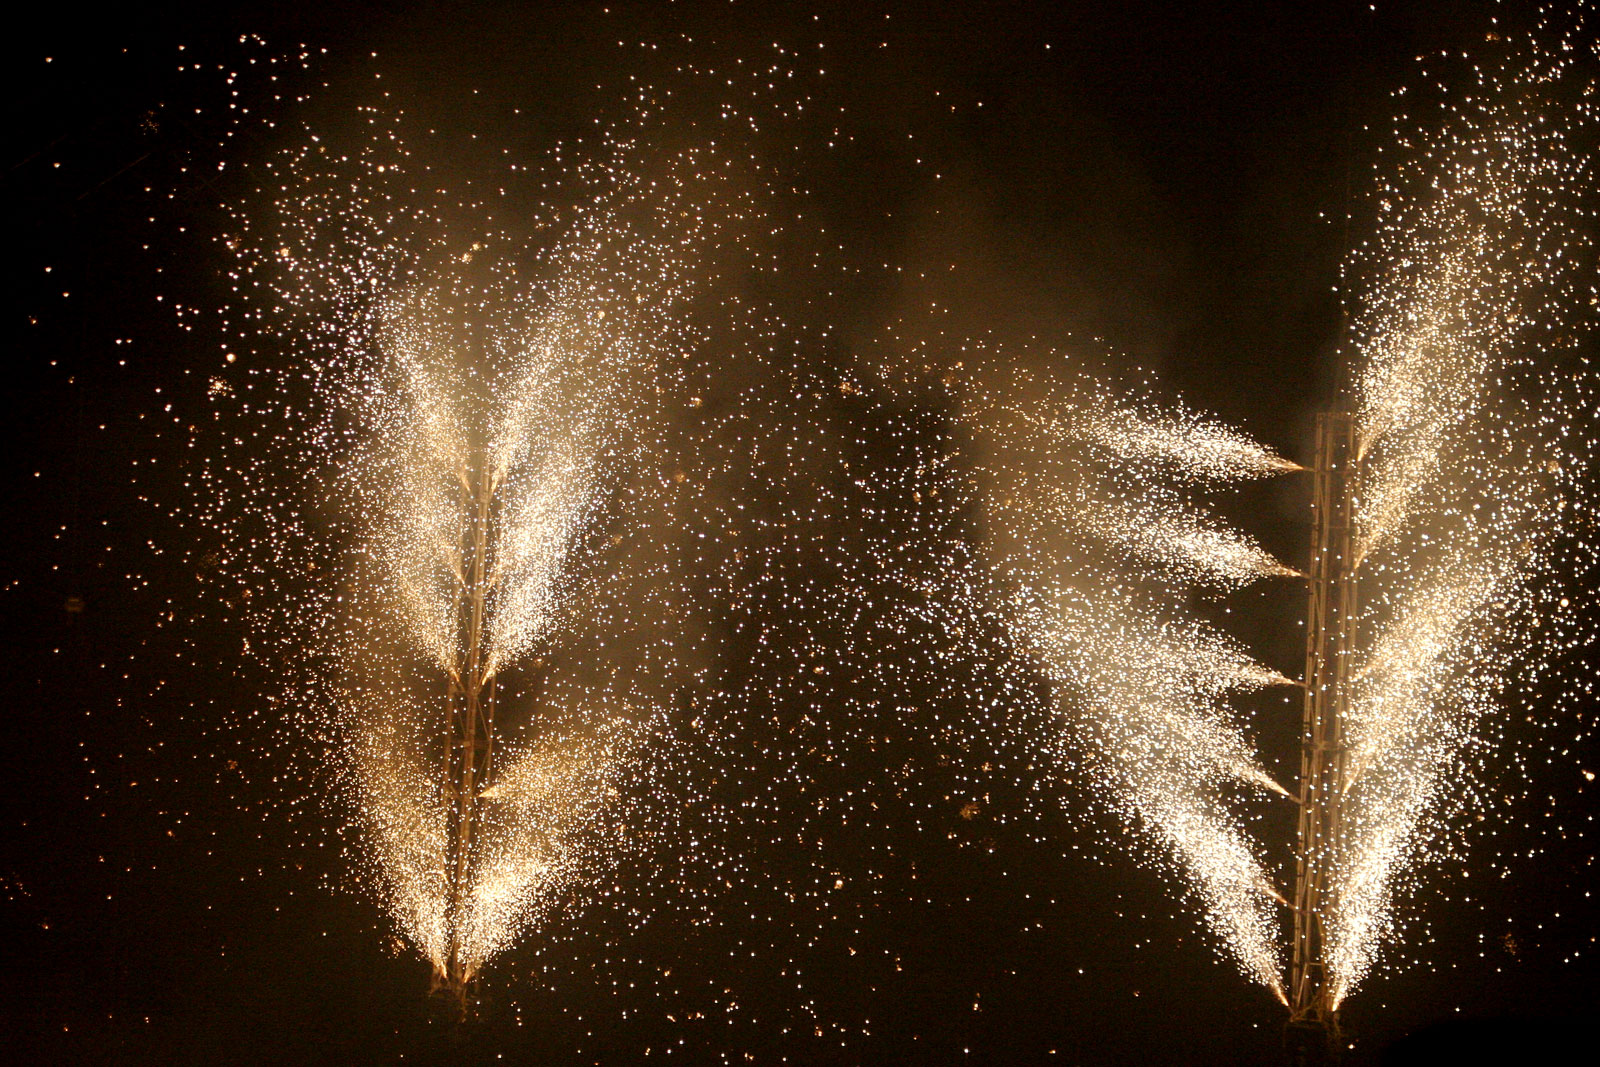 Pyrotechnics gerbs used in the entertainment industry.